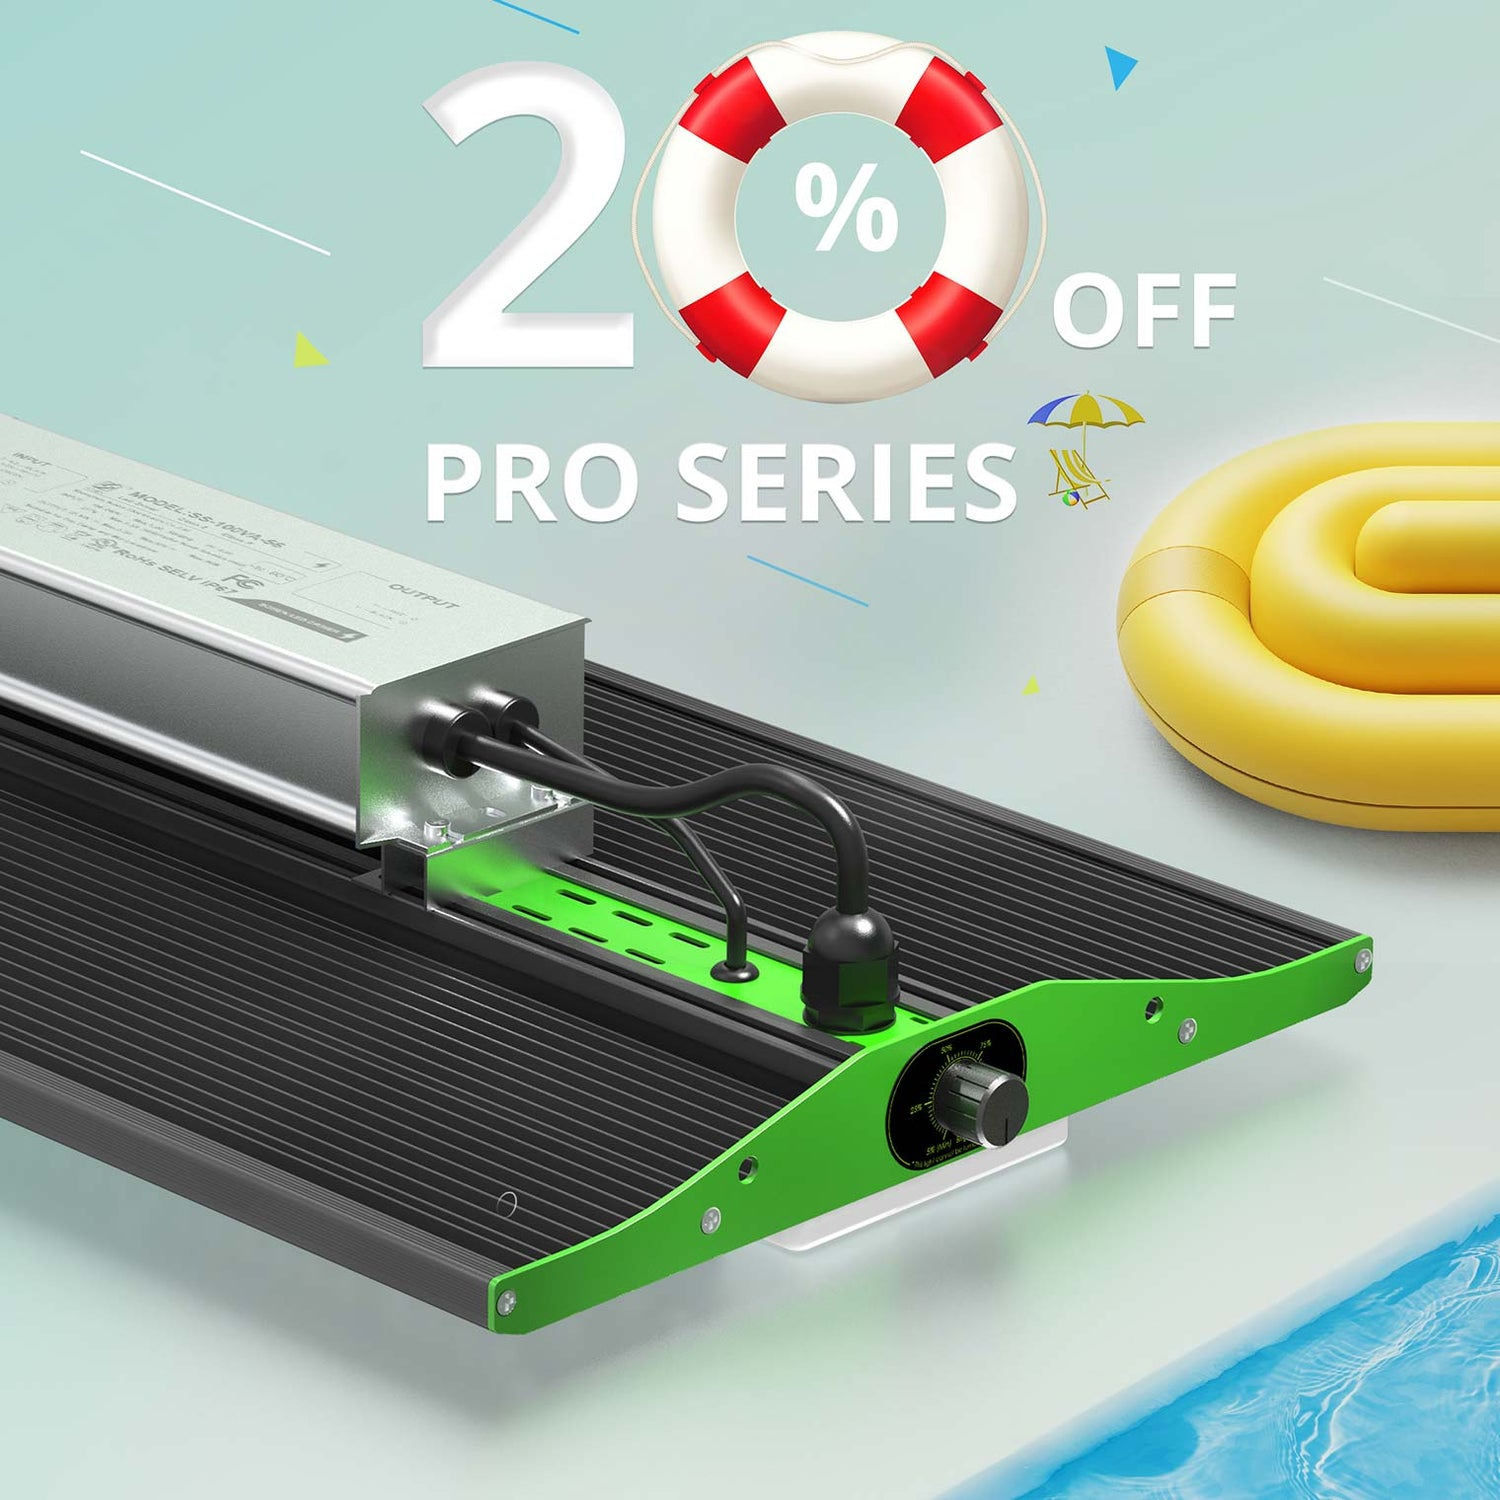 Summer Sale - Special Offer for Pro Series Starts